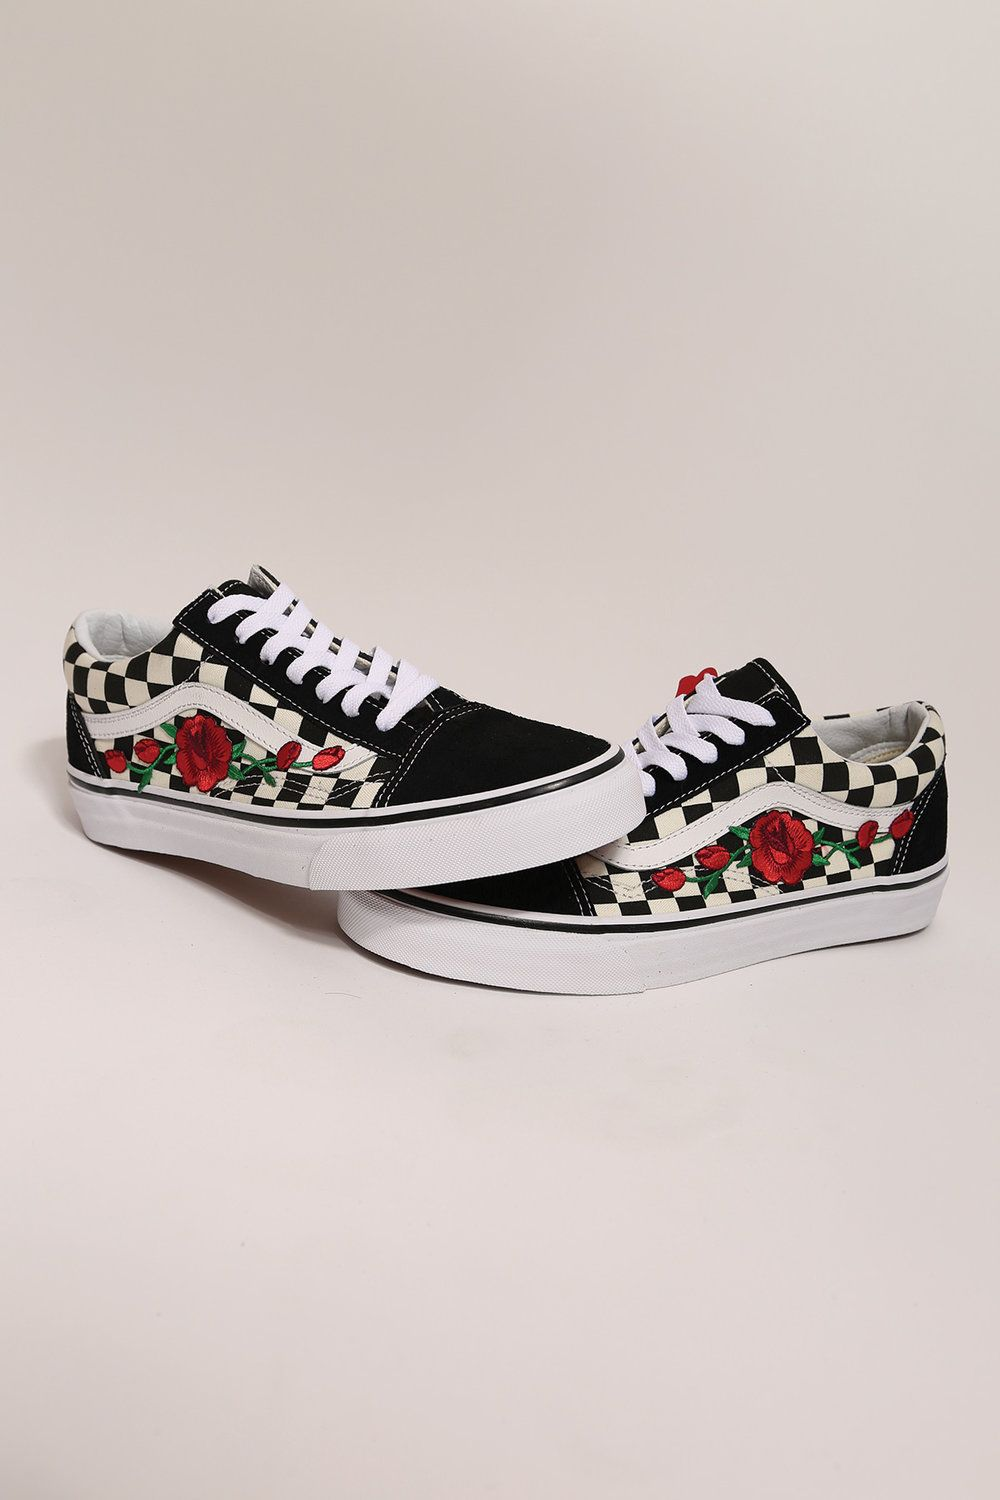 7a89dafec9 Custom rose vans checkered old skool low top in 2019